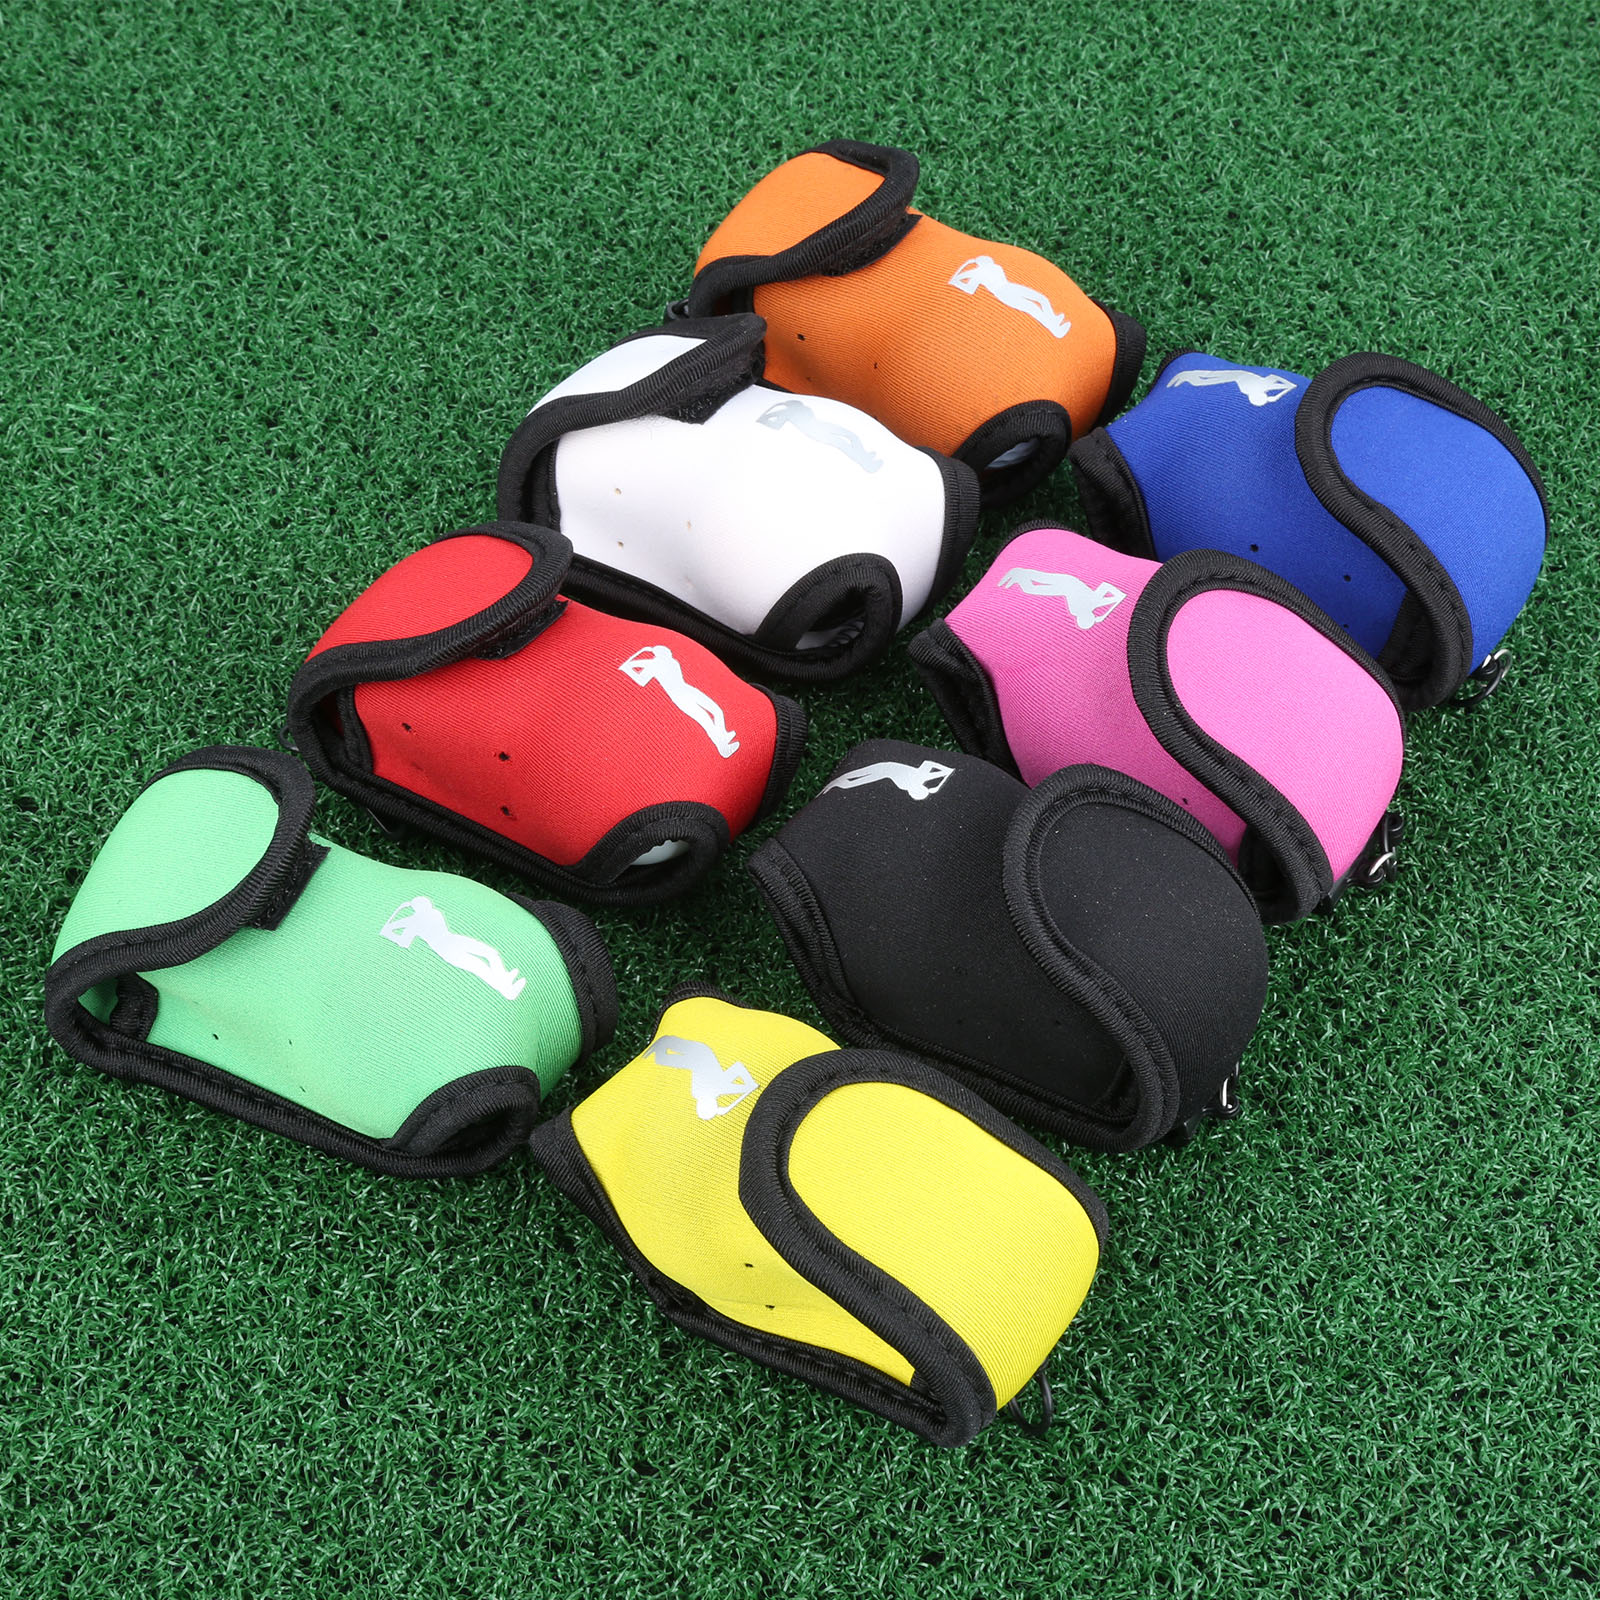 Neoprene 1 Pc Portable Mini Compact Golf Ball Bag Golf Tee Holder Storage Case Carry Pouch Small Waist Bag For Training Practice